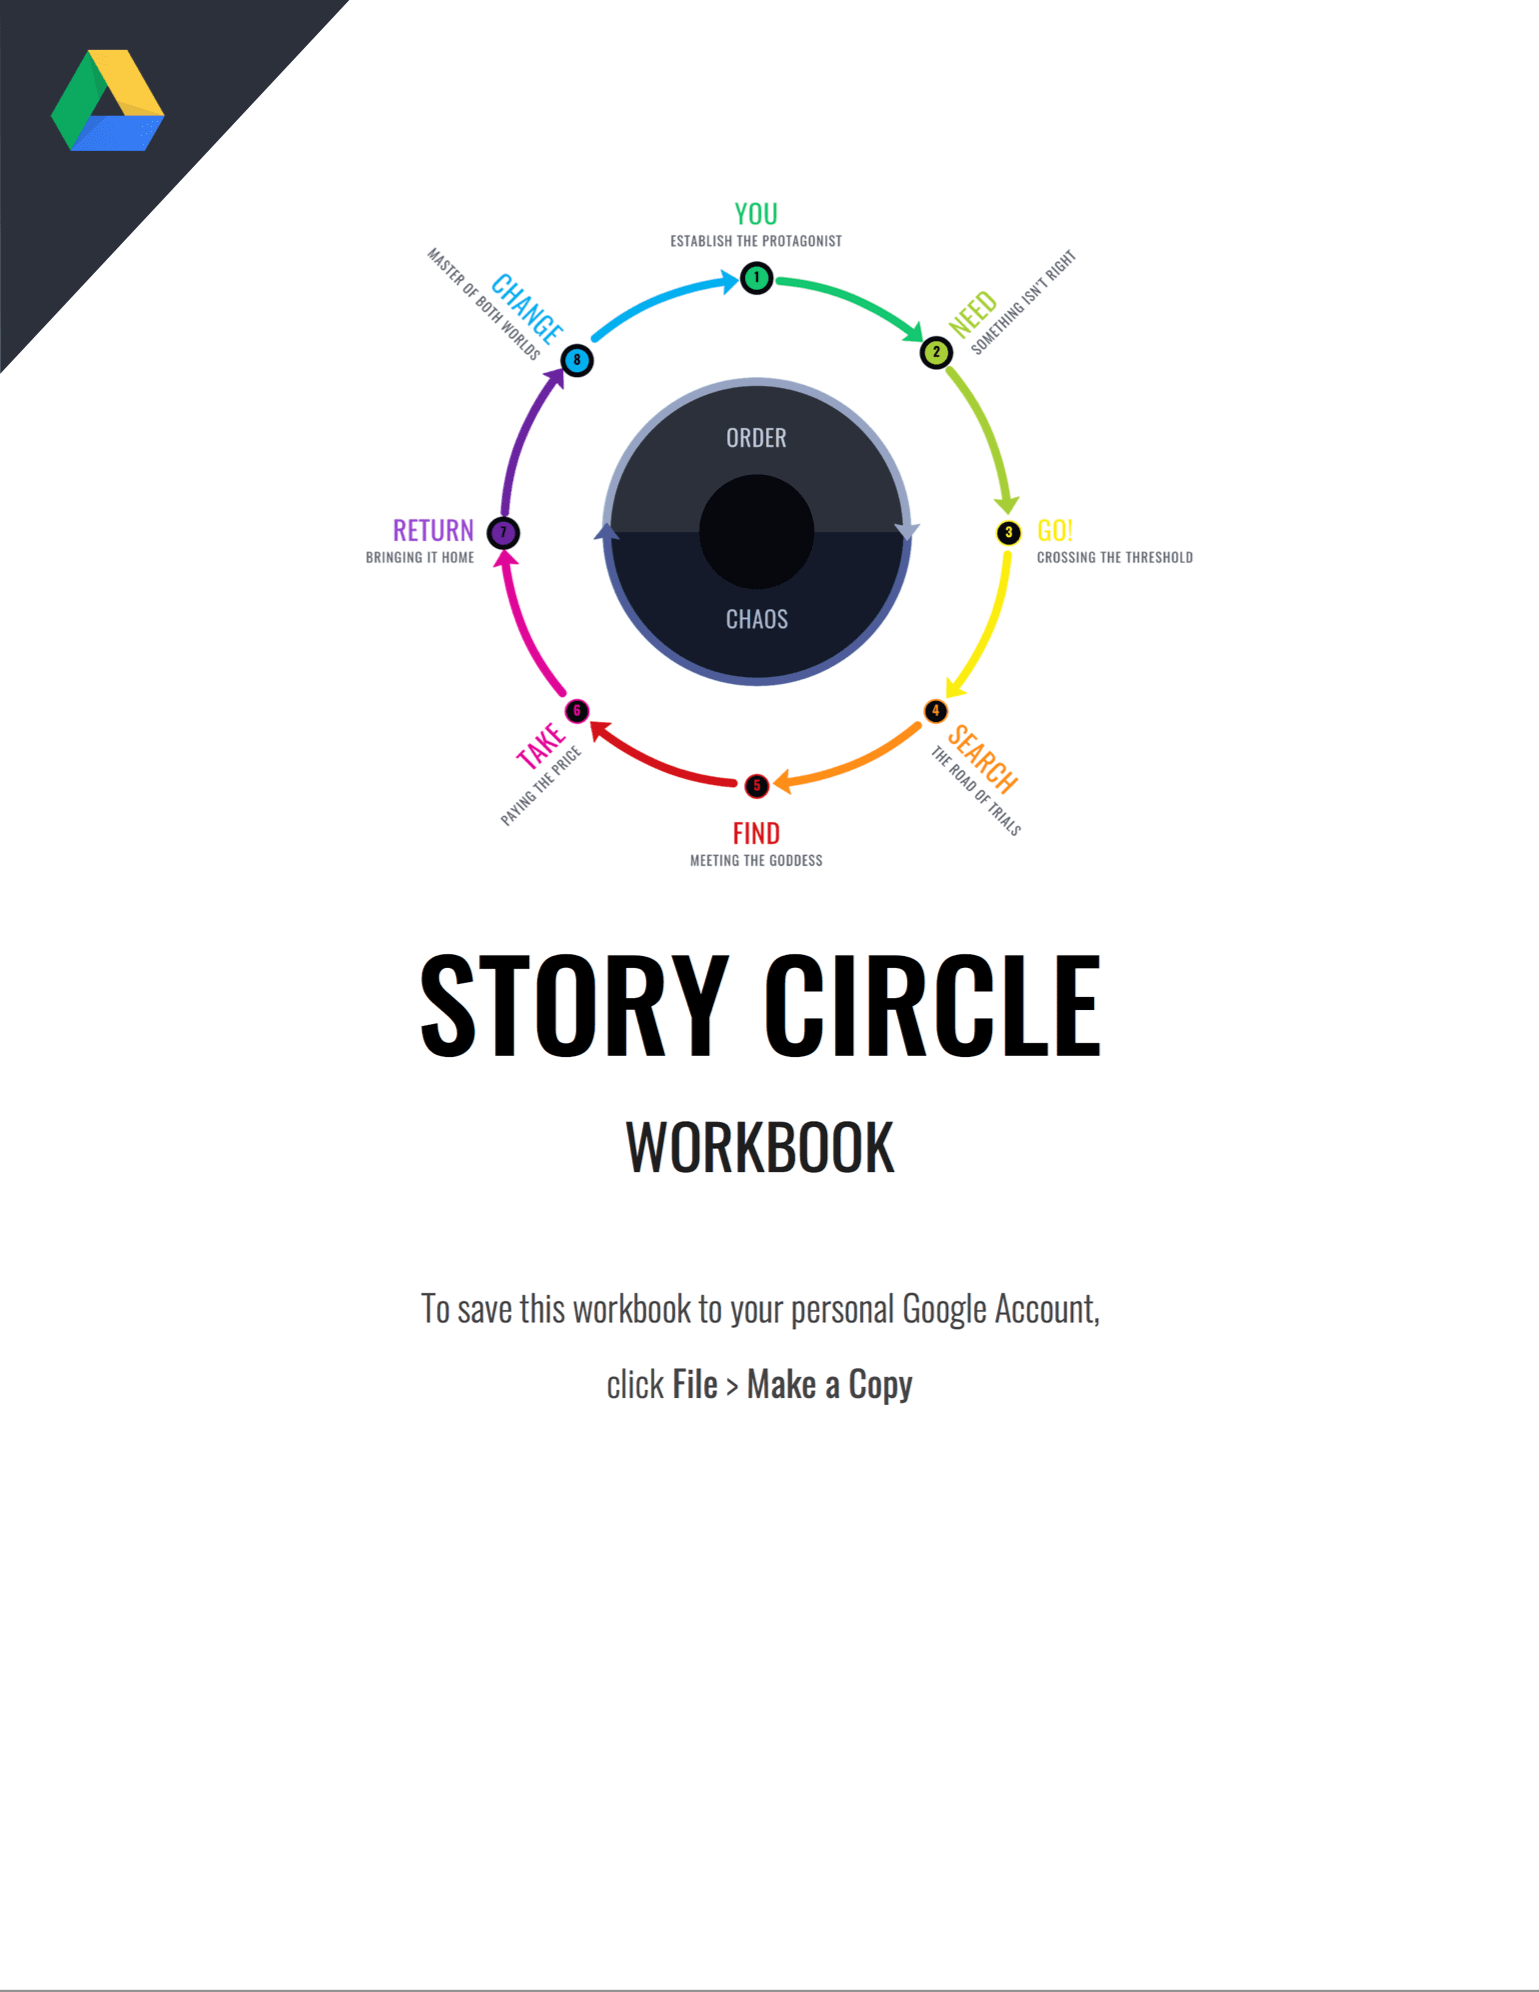 photo regarding Thing 1 and Thing 2 Printable Circles named Cost-free Tale Circle Template and Workbook [with Illustrations]